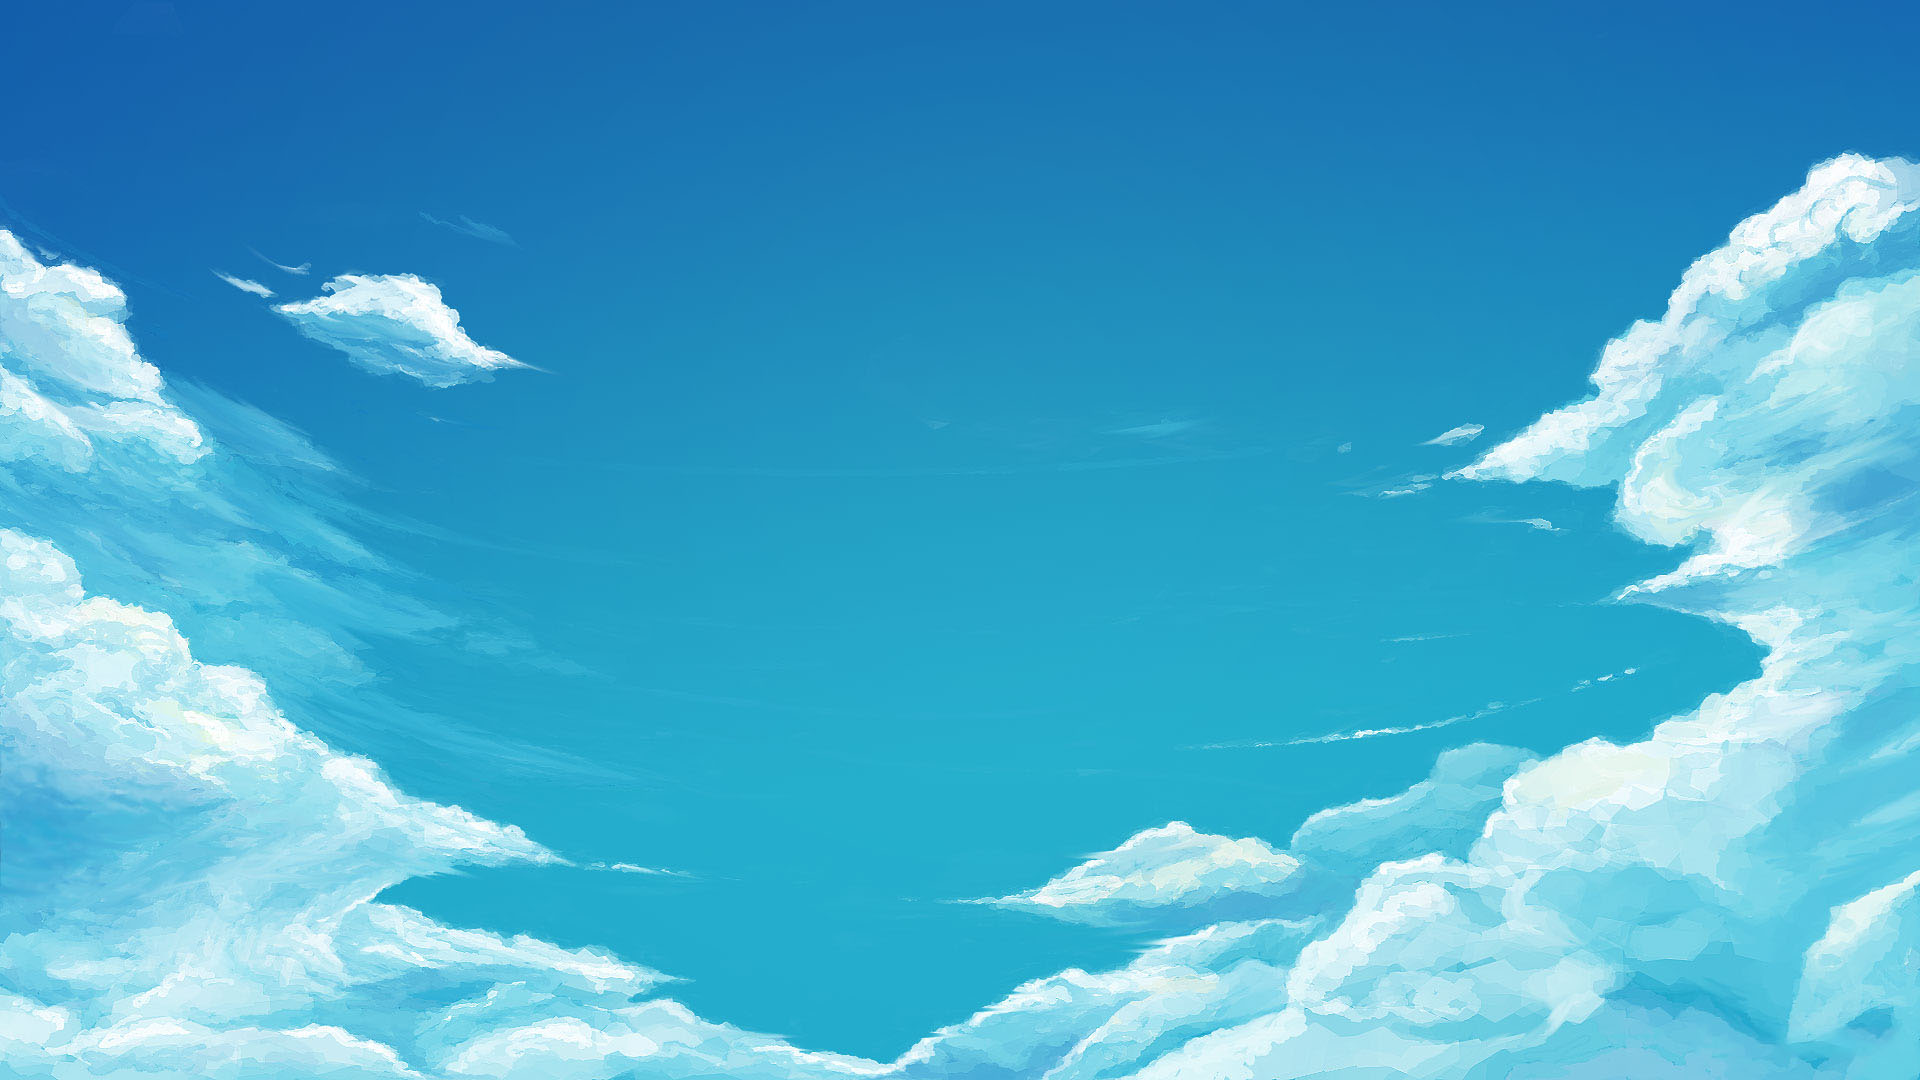 Animated Wallpaper For Tablet Animated Blue Sky Hd Wallpaper Hd Latest Wallpapers